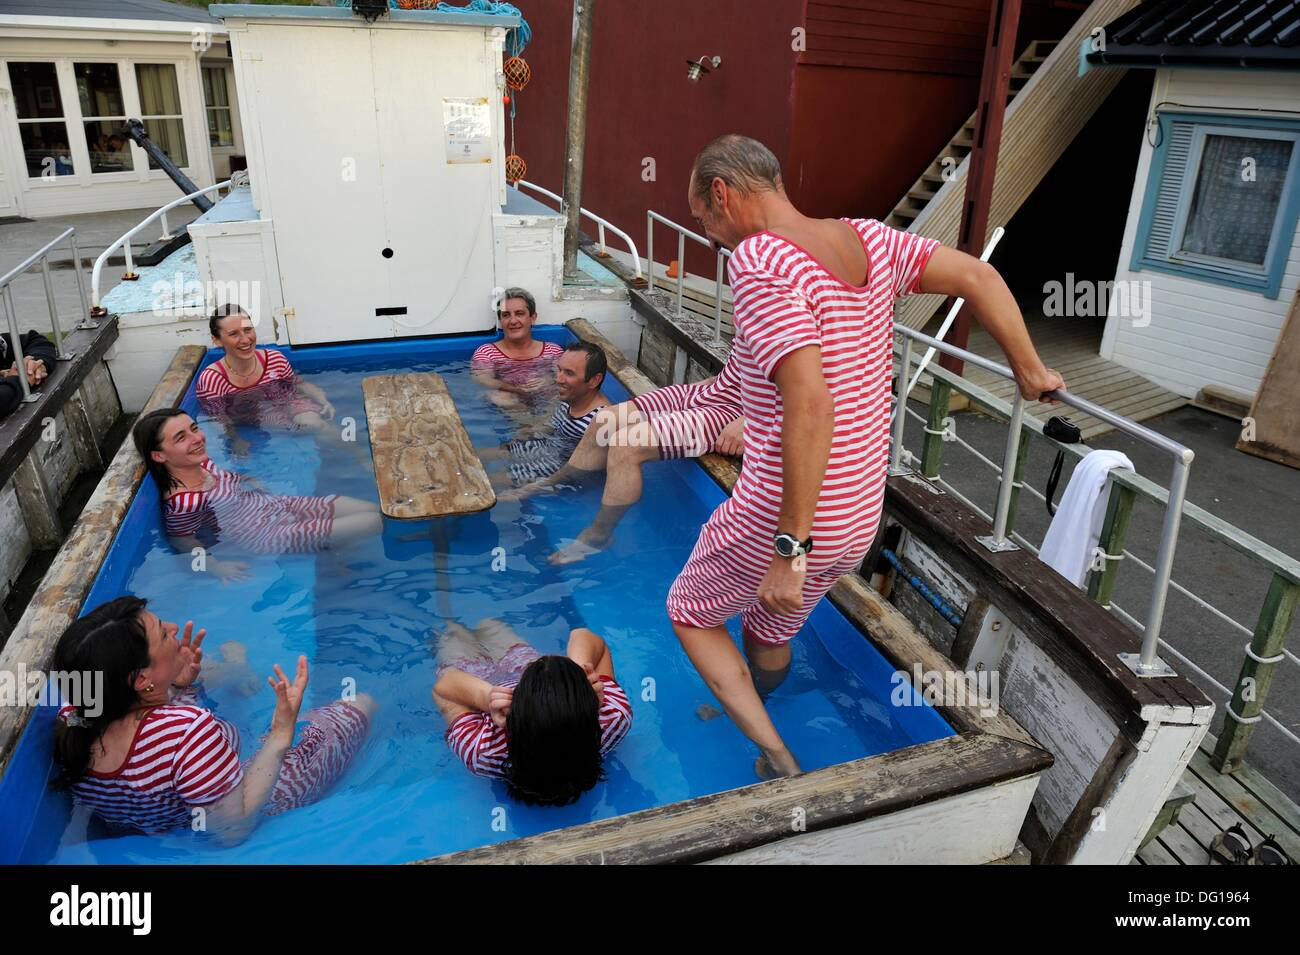 people bathing in an outdoor hot tub settled in a boat, dressed ...